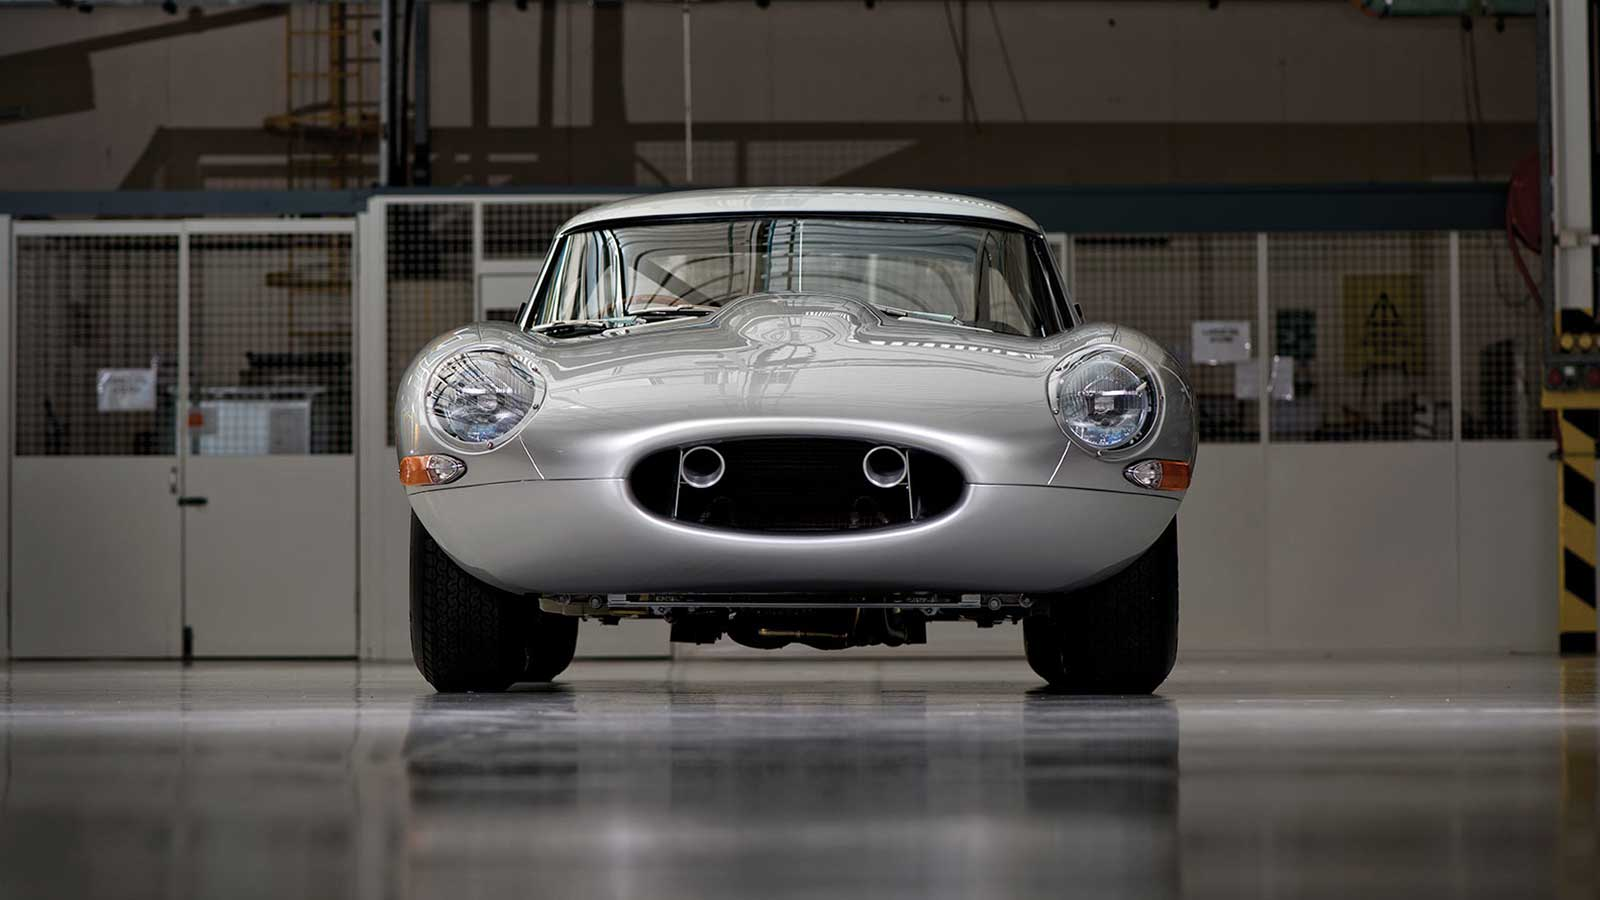 Jaguar Lightweight E-TYPE front view.